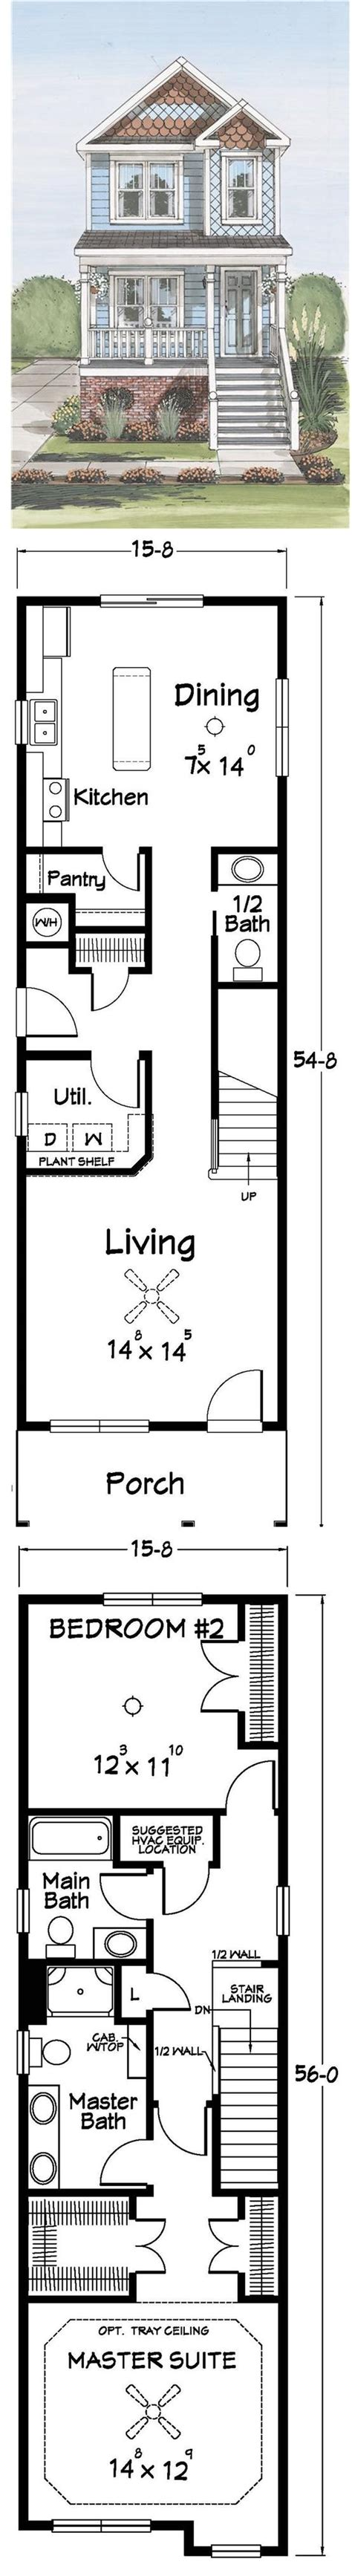 small lot house plans this charming narrow lot friendly garden city plan provied large house square